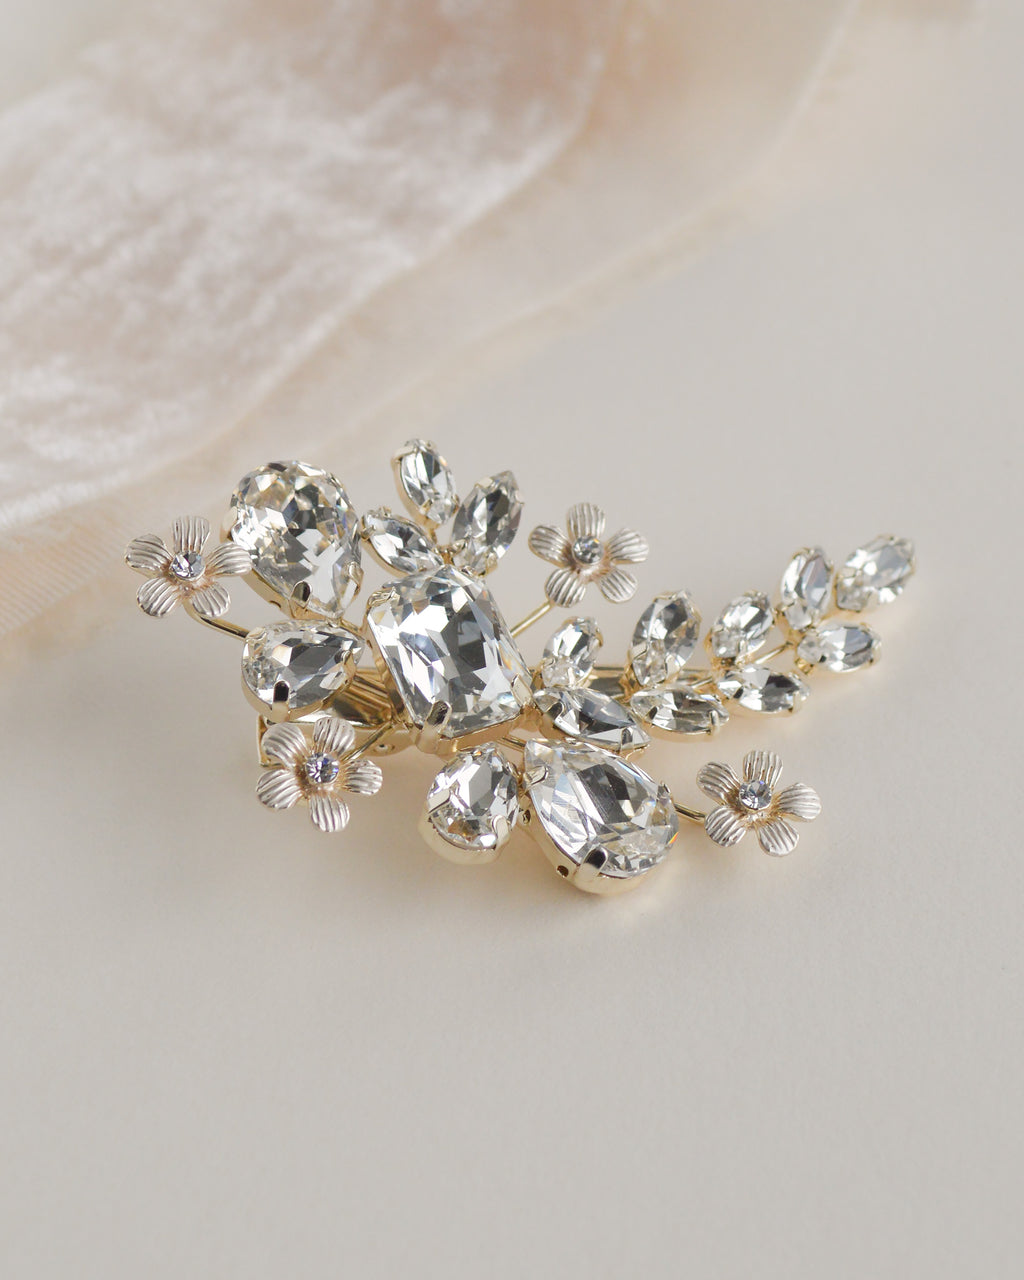 Vintage Style Old Gold Leaf Wedding Diamante Crystal Hair Clip Accessories